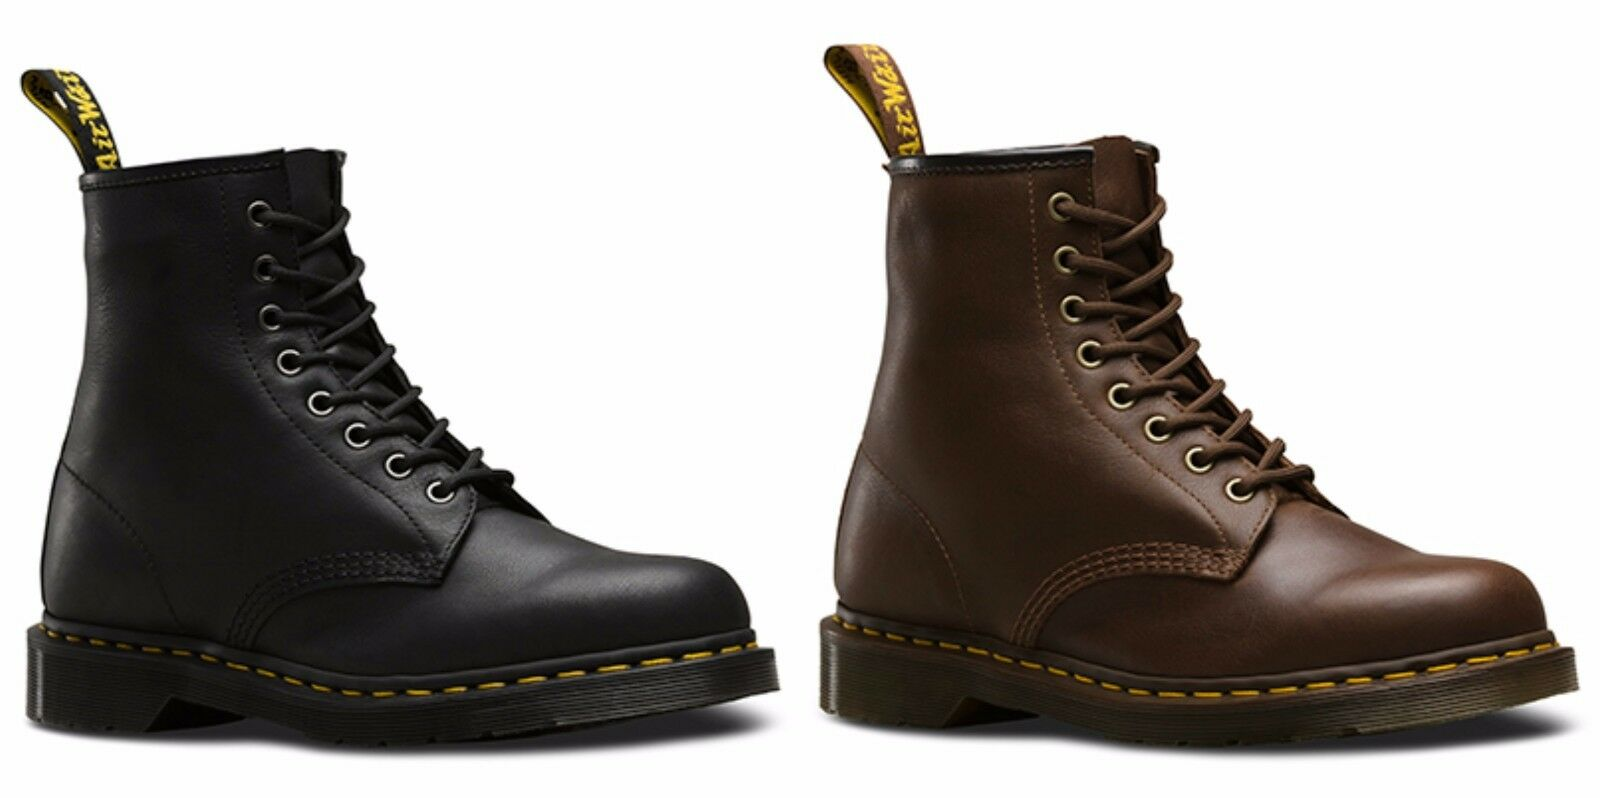 Dr.Martens Mens 1460 Carpathian Lace Up Boots Black and Tan